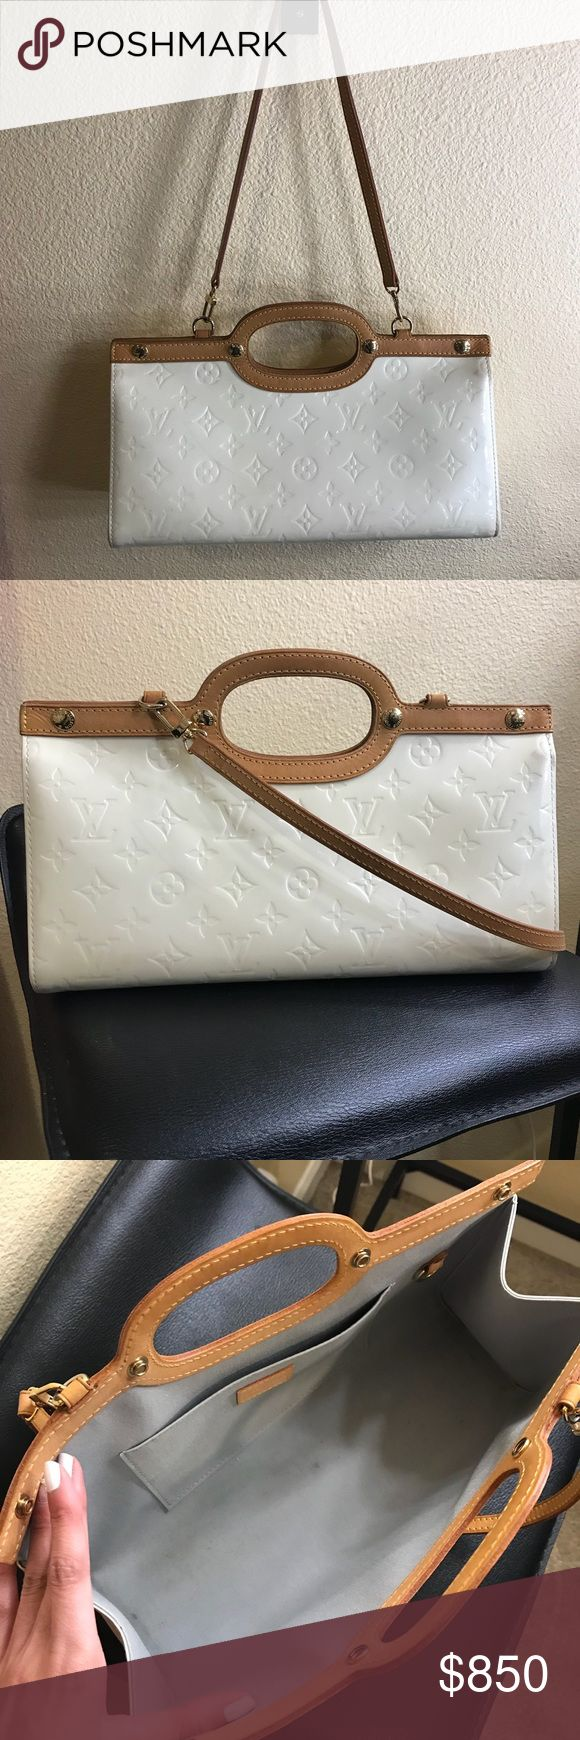 Louis Vuitton Purse 👜 💯 % Authentic Louis Vuitton Purse! Love this purse because it matched almost anything I pair it with! Selling because I am trying to clear out my purse closet to save up for new ones! Has some signs of wear (as shown in pics). Look carefully at the marks! Price is not firm, reasonable offers accepted 💖 Louis Vuitton Bags Shoulder Bags